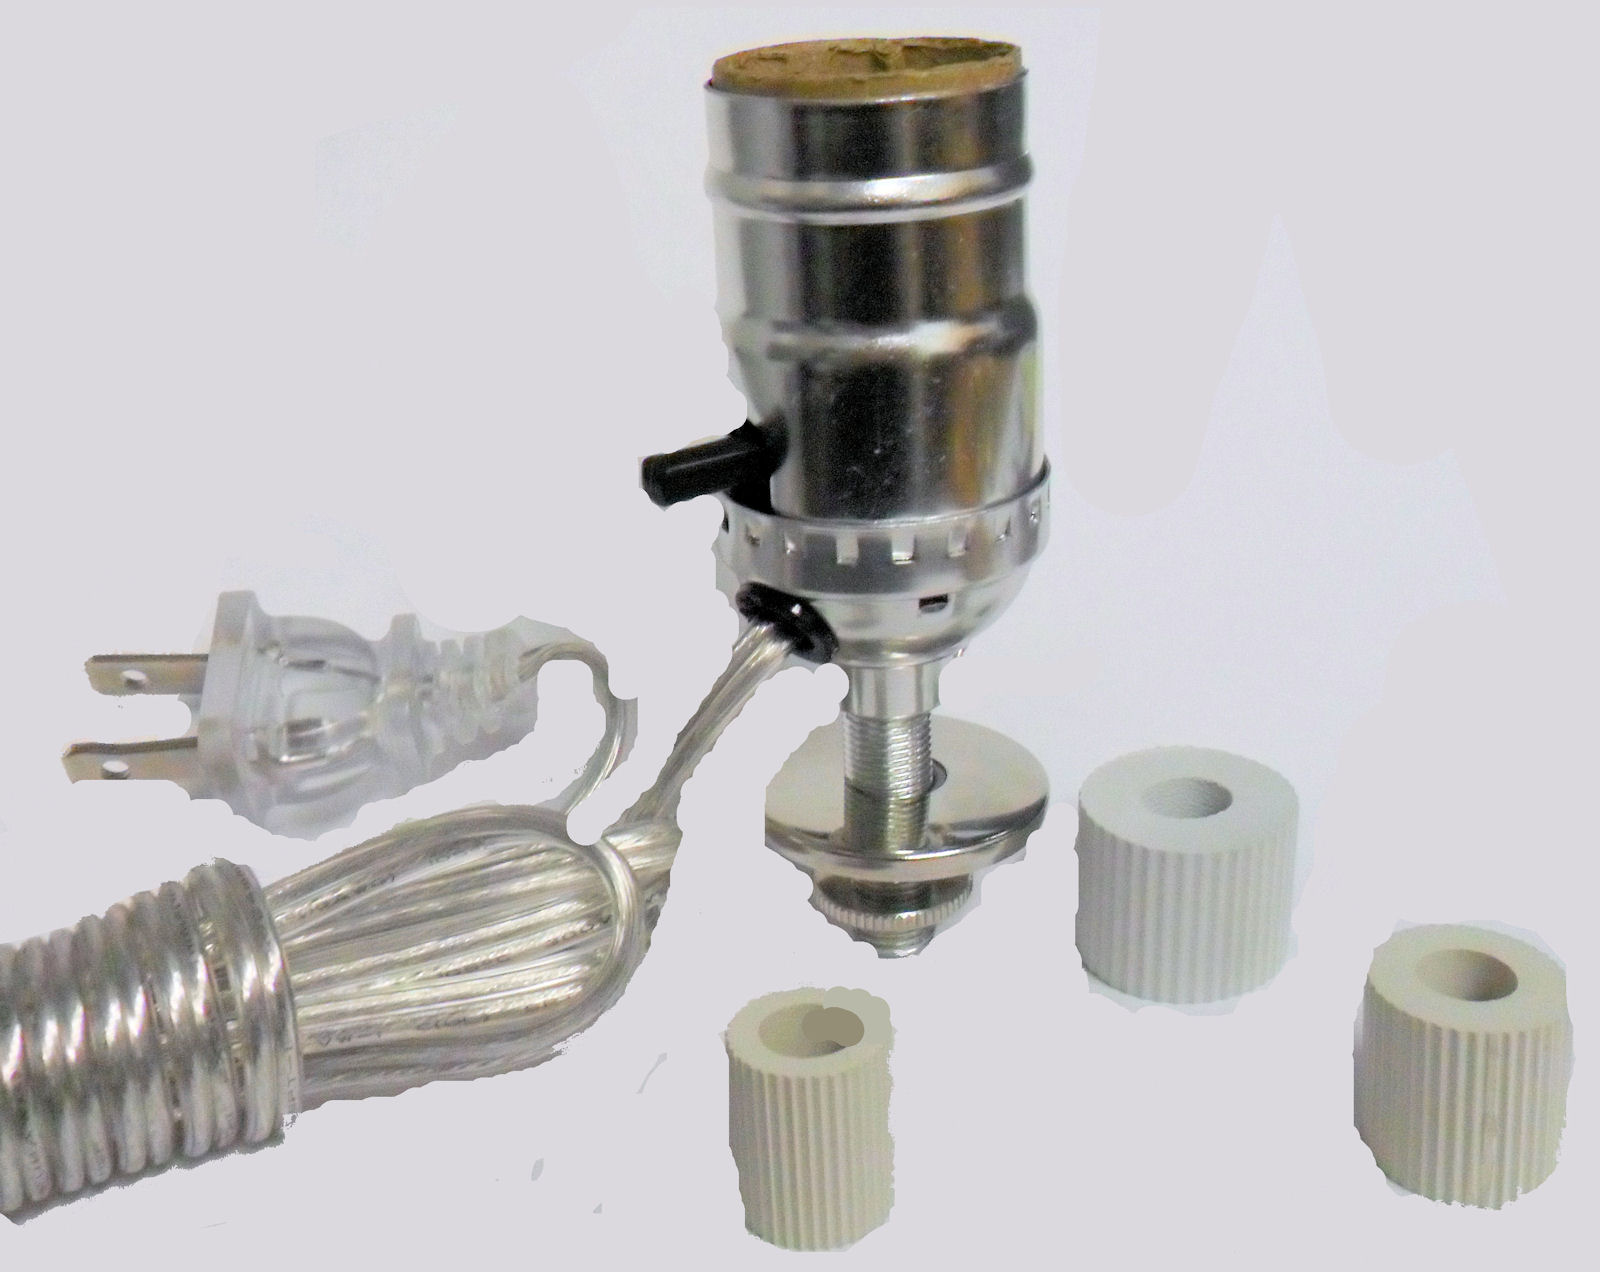 SILVER BOTTLE KIT- SILVER CORD W/ 3 ADAPTERS